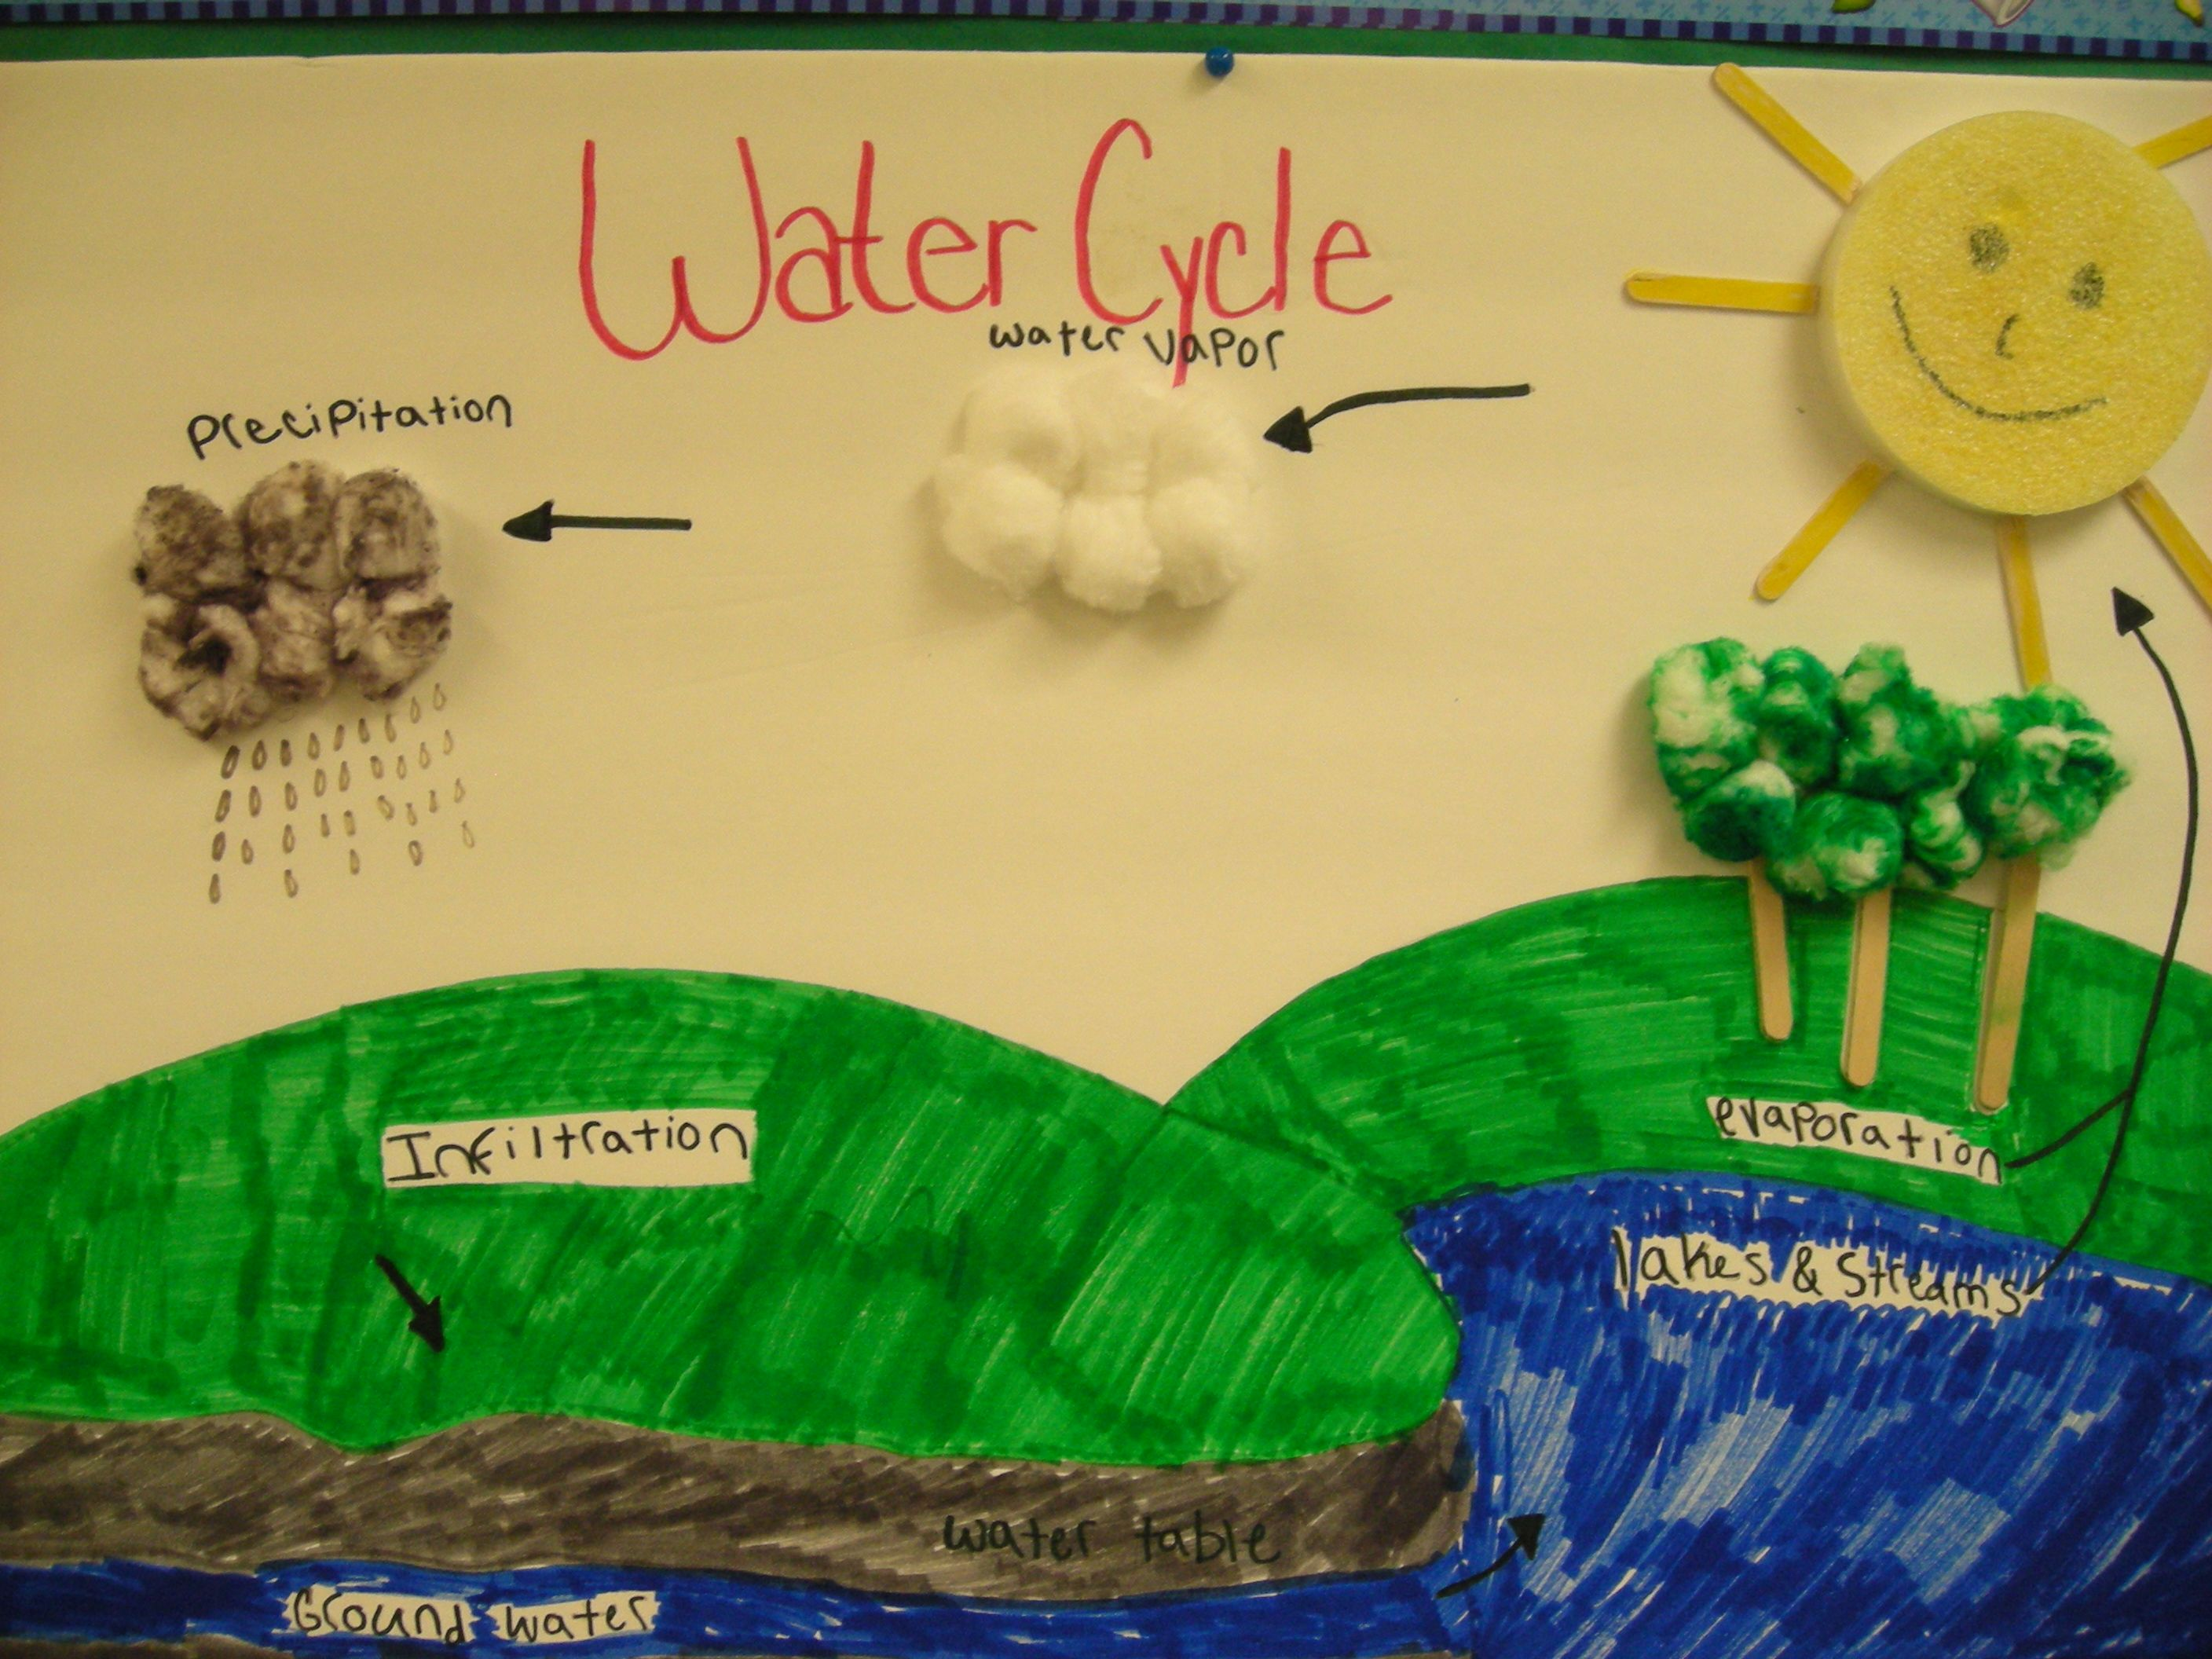 Water Cycle Diagram Worksheet For Middle School